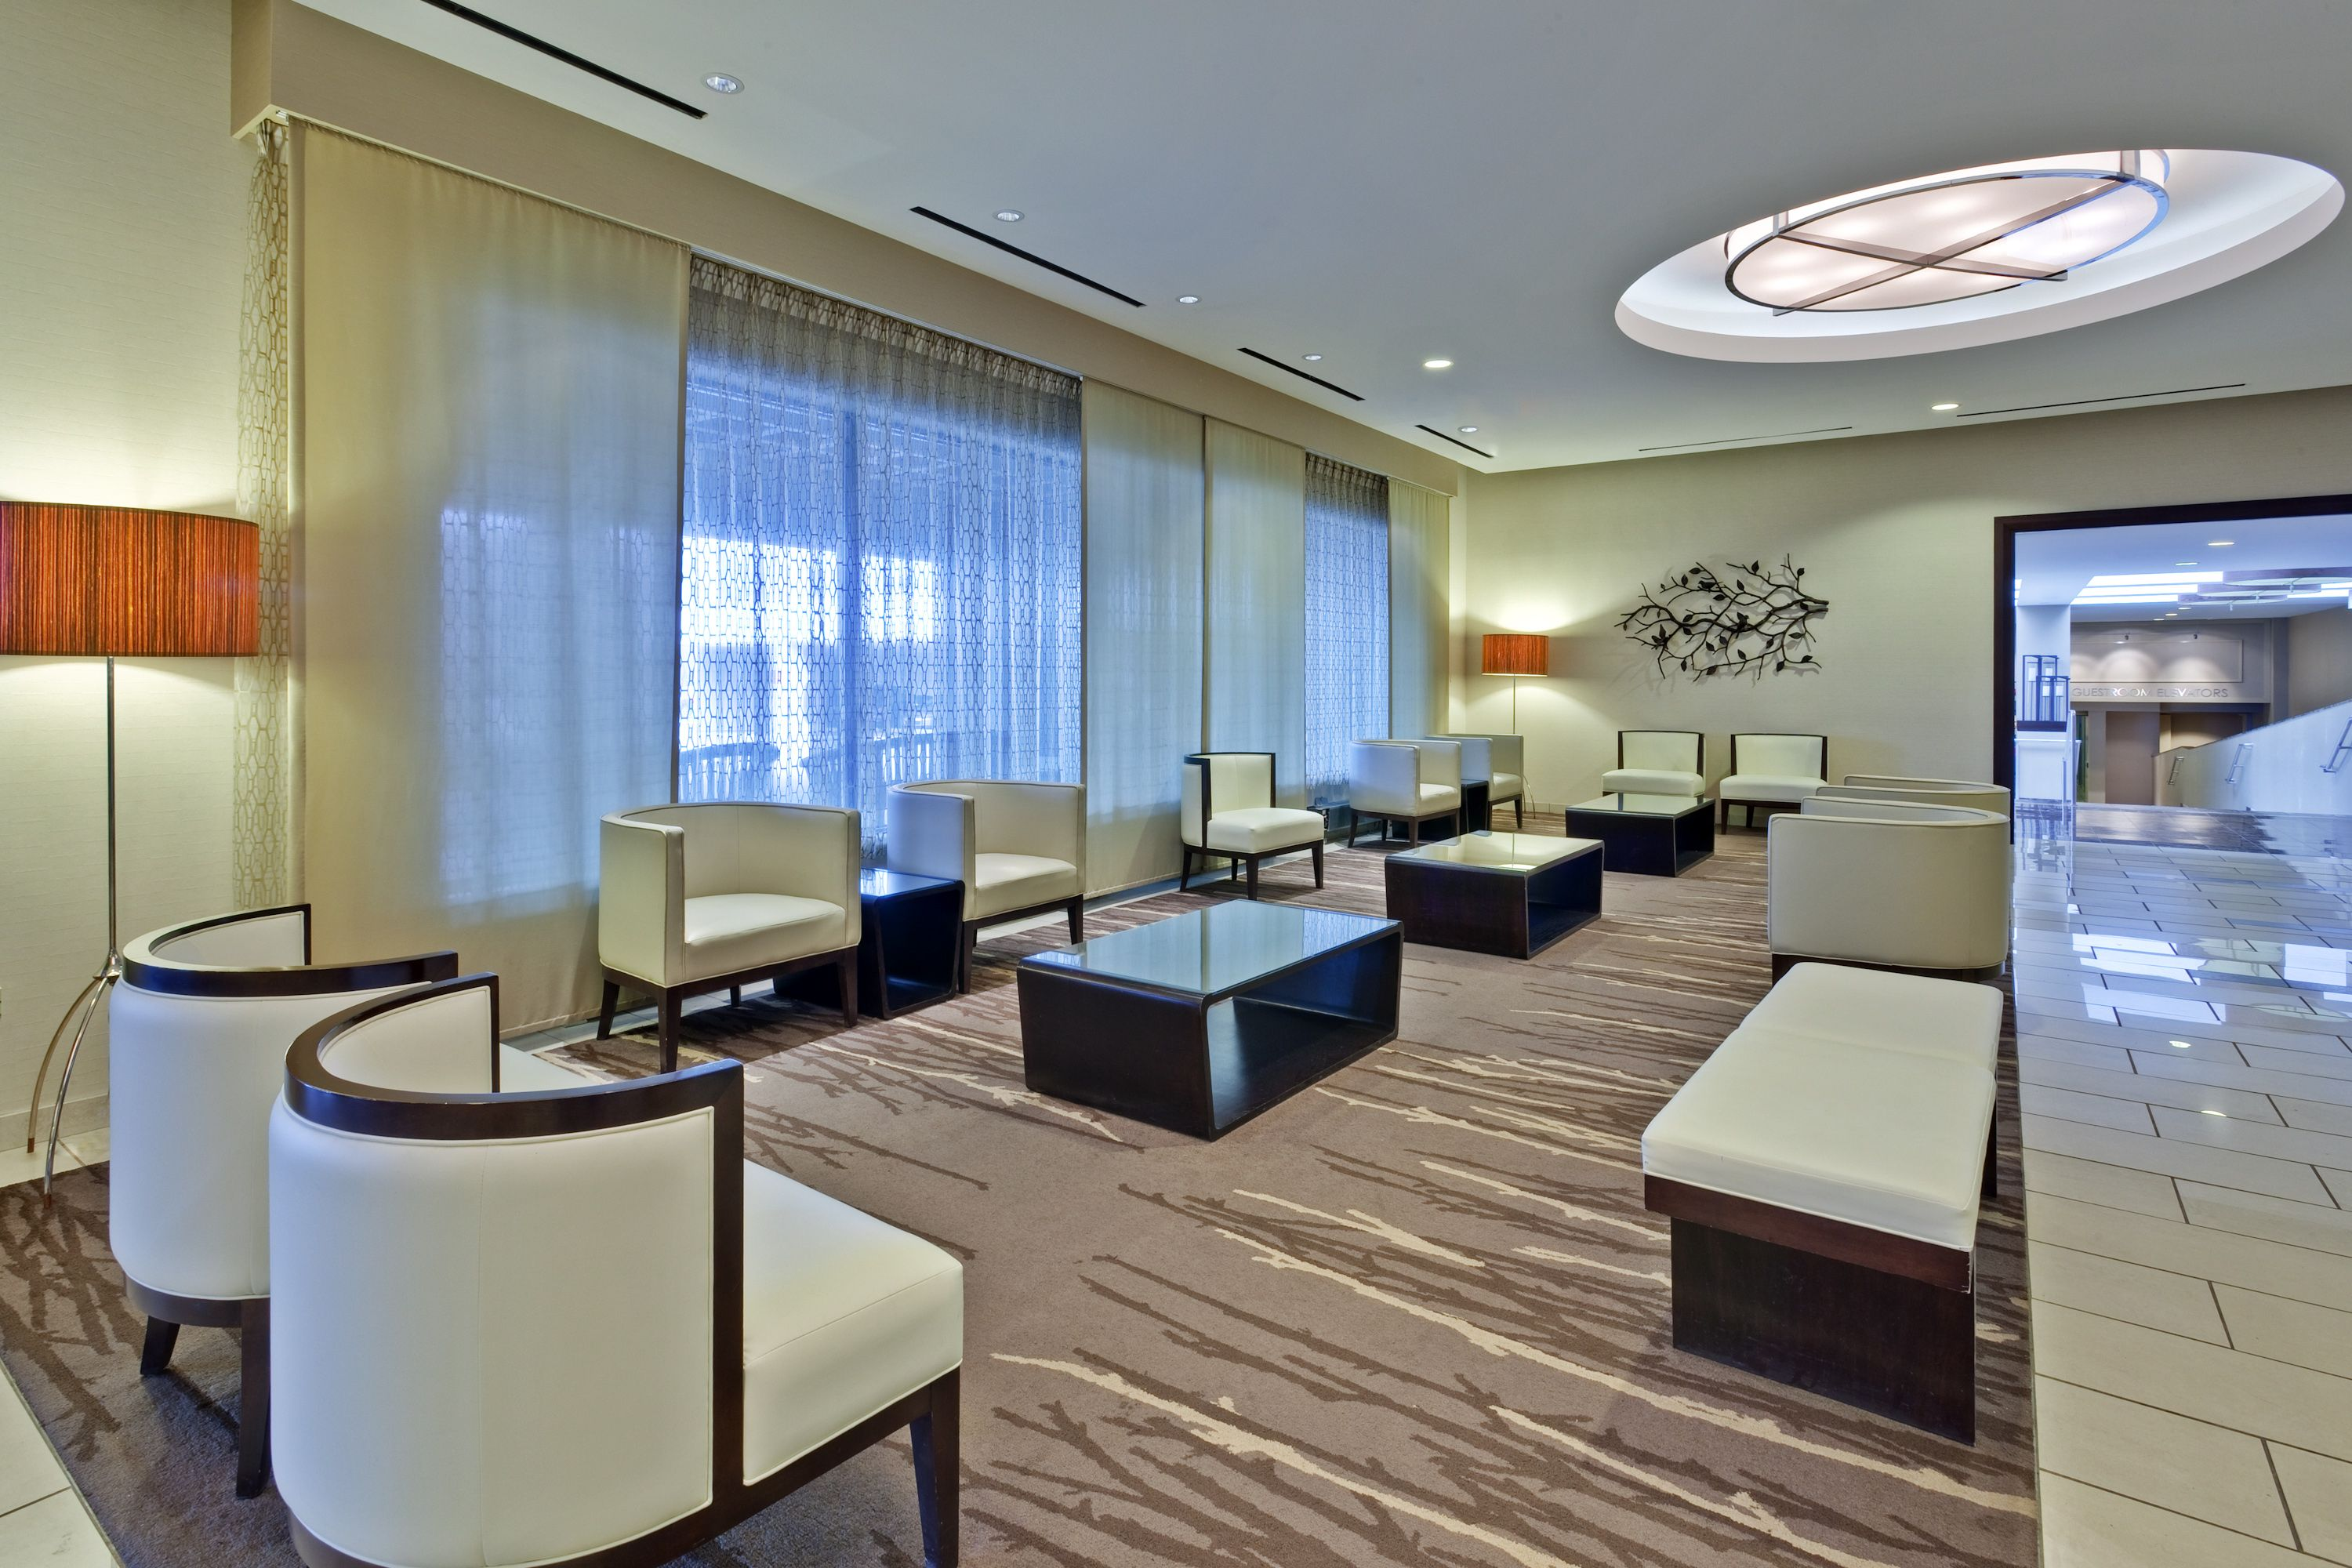 Crowne Plaza Chicago Ohare Hotel & Conf Ctr image 6